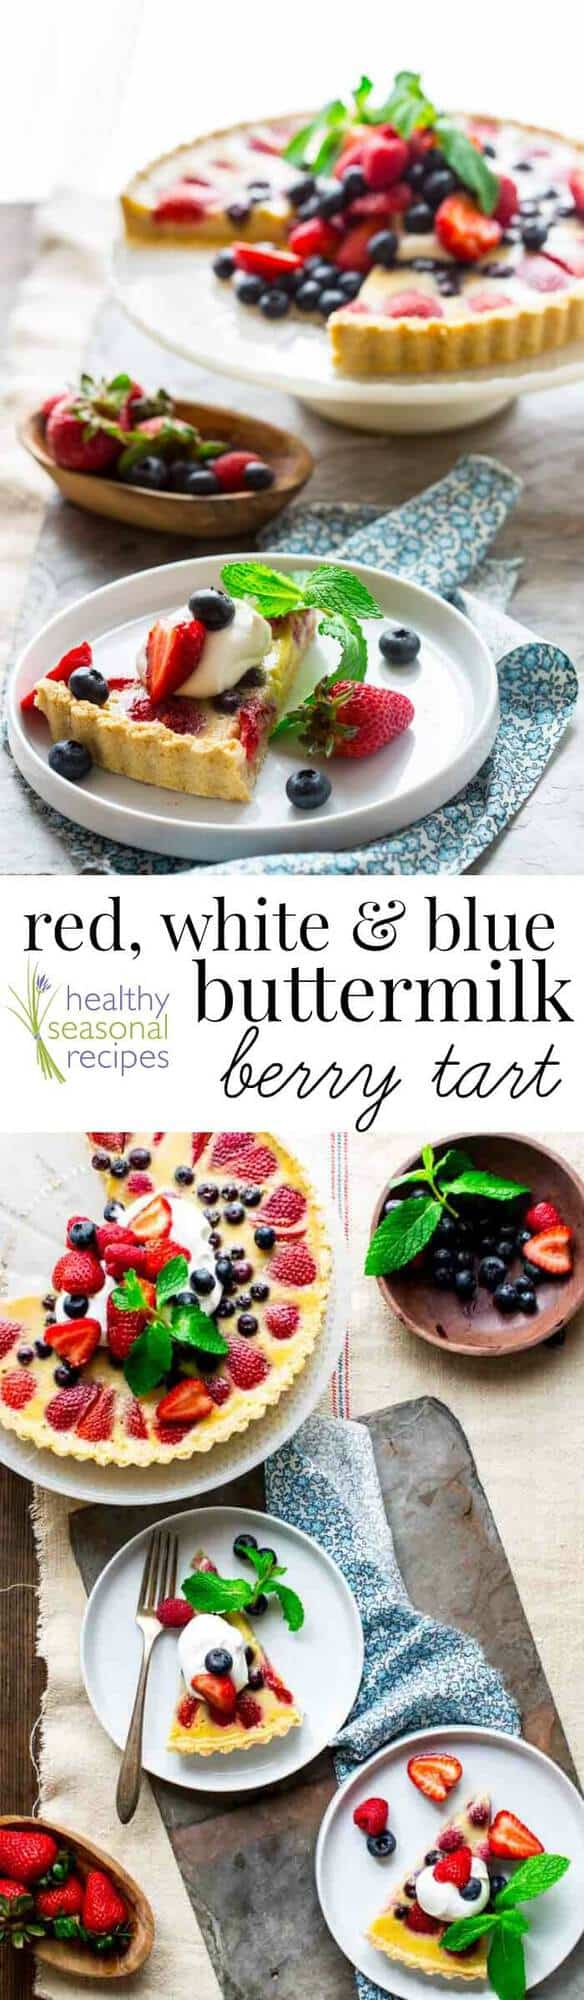 Red White and Blue Tart made with berries and buttermilk makes an impressive looking (but actually easy) dessert for the Fourth of July or Memorial Day. It's made with a simple press-in tart shell (no rolling or crimping required) and the sweet buttermilk filling tastes so good with fresh summer berries! #dessert #redwhiteandblue #fourthofjuly #berries